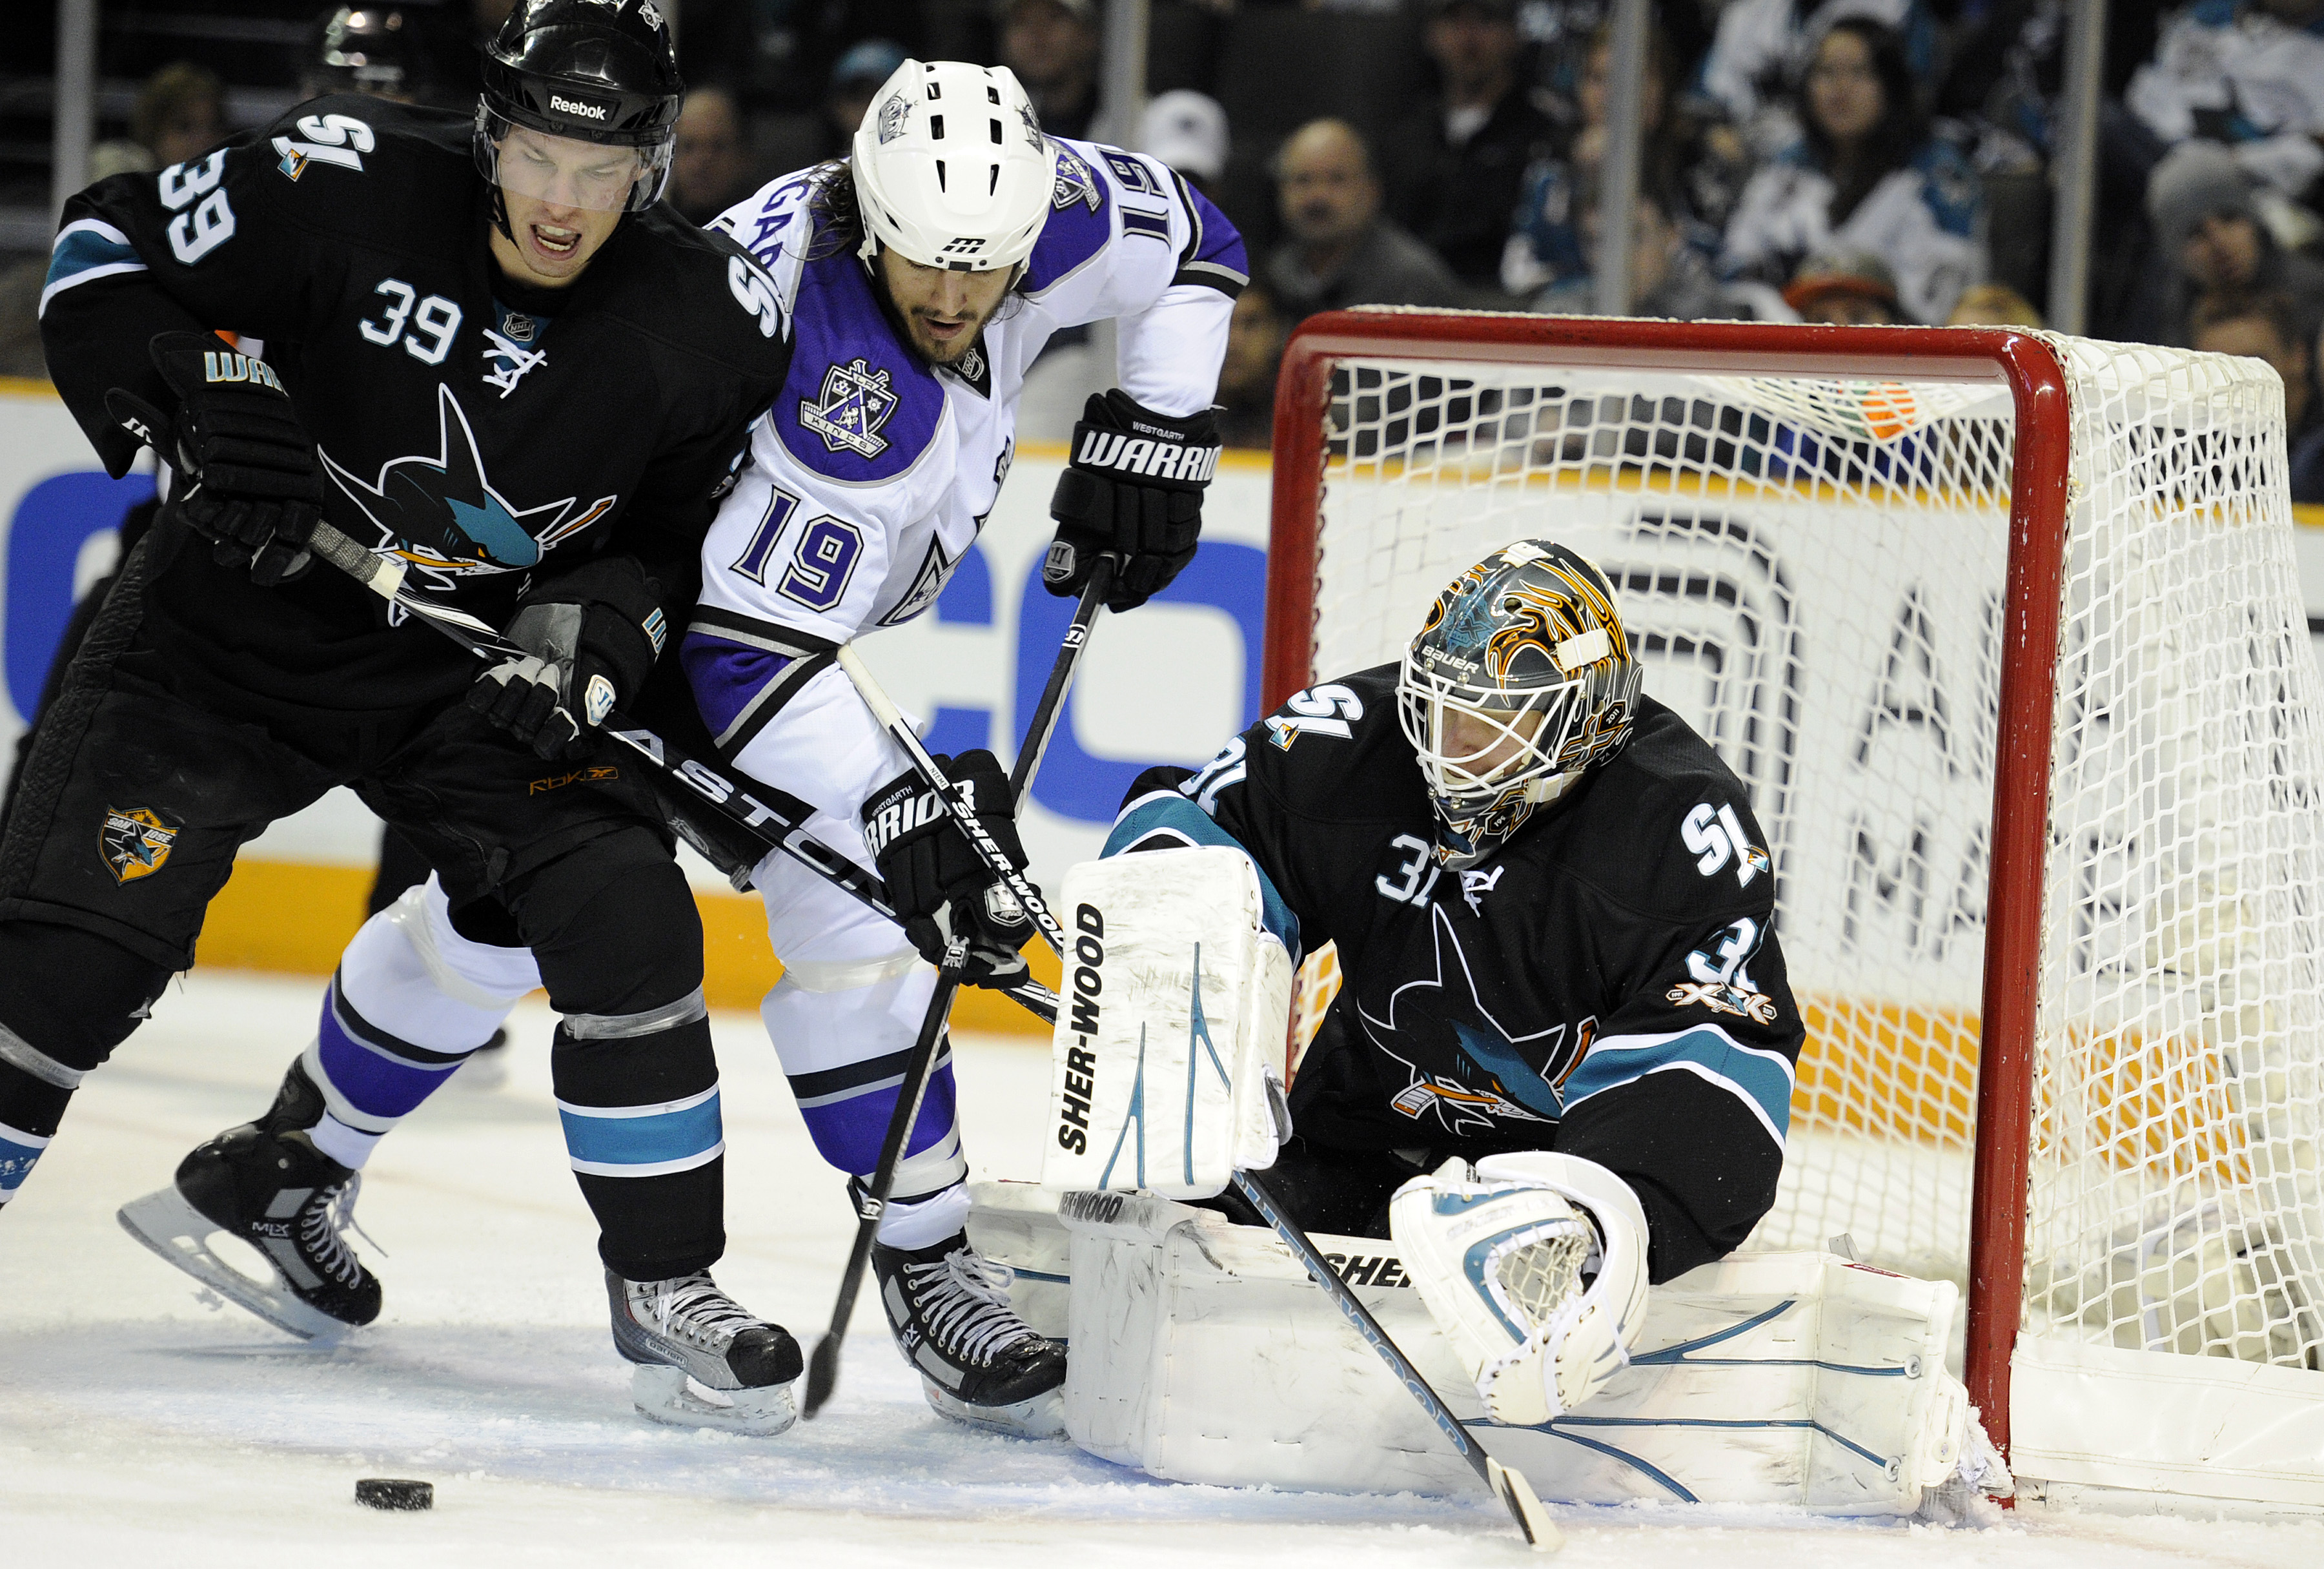 SAN JOSE, CA - DECEMBER 27:  Goalie Antti Niemi #31of the San Jose Sharks makes a save on the rebound shot of Kevin Westgarth #19 of the Los Angeles Kings during an NHL hockey game at the HP Pavilion on December 27, 2010 in San Jose, California. (Photo by